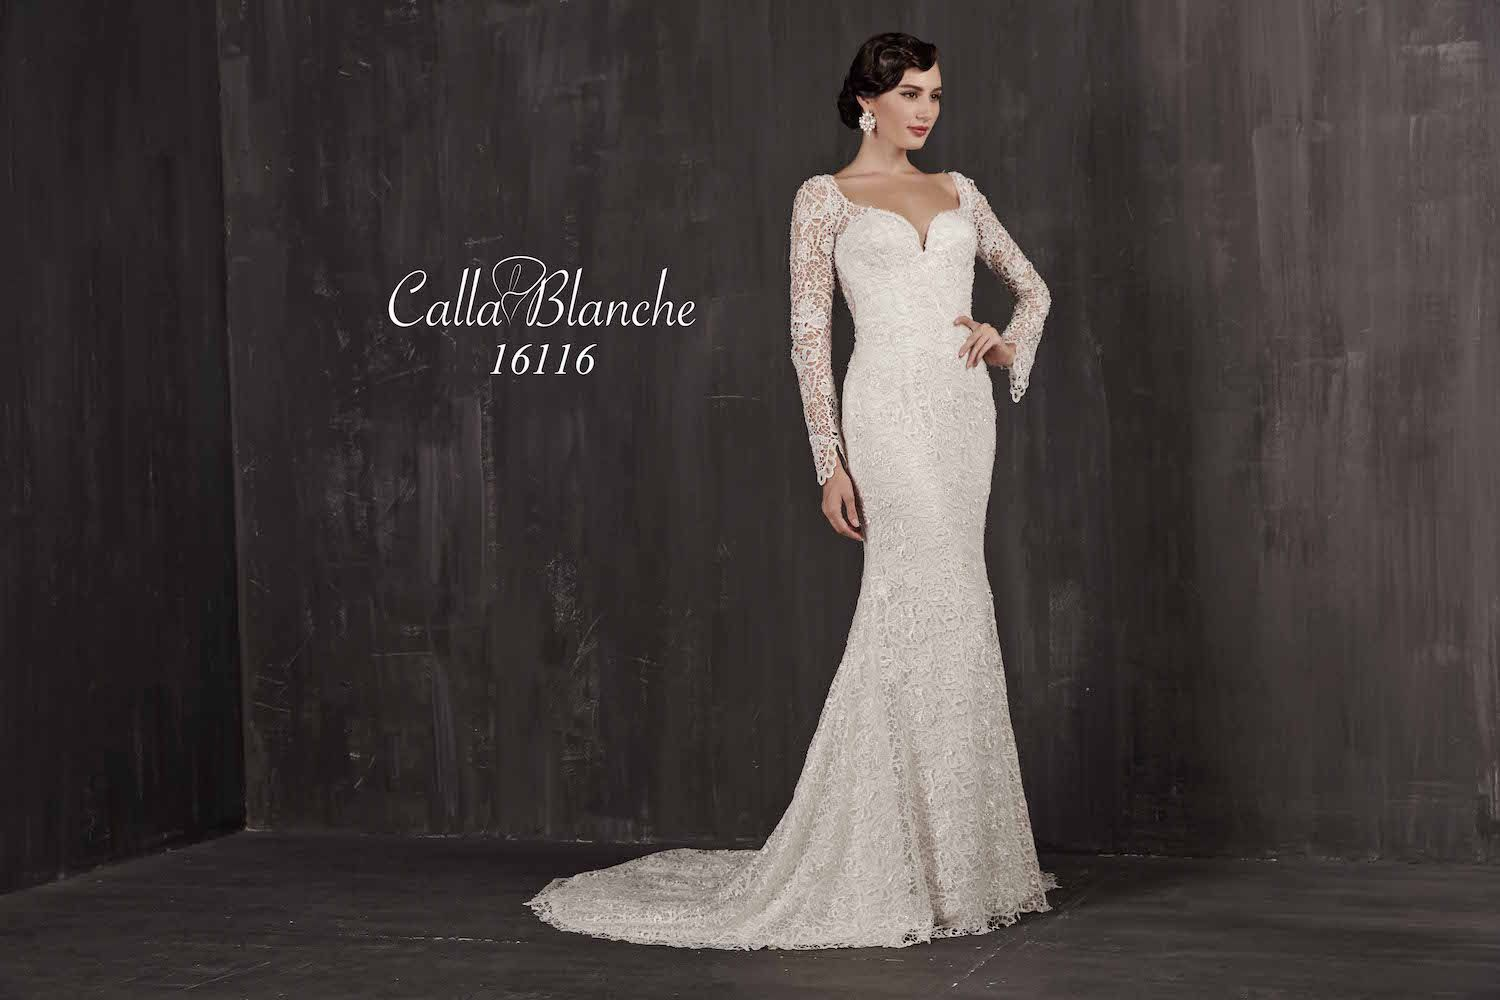 Calla blanche wedding dressgown ivory lace long sleeve